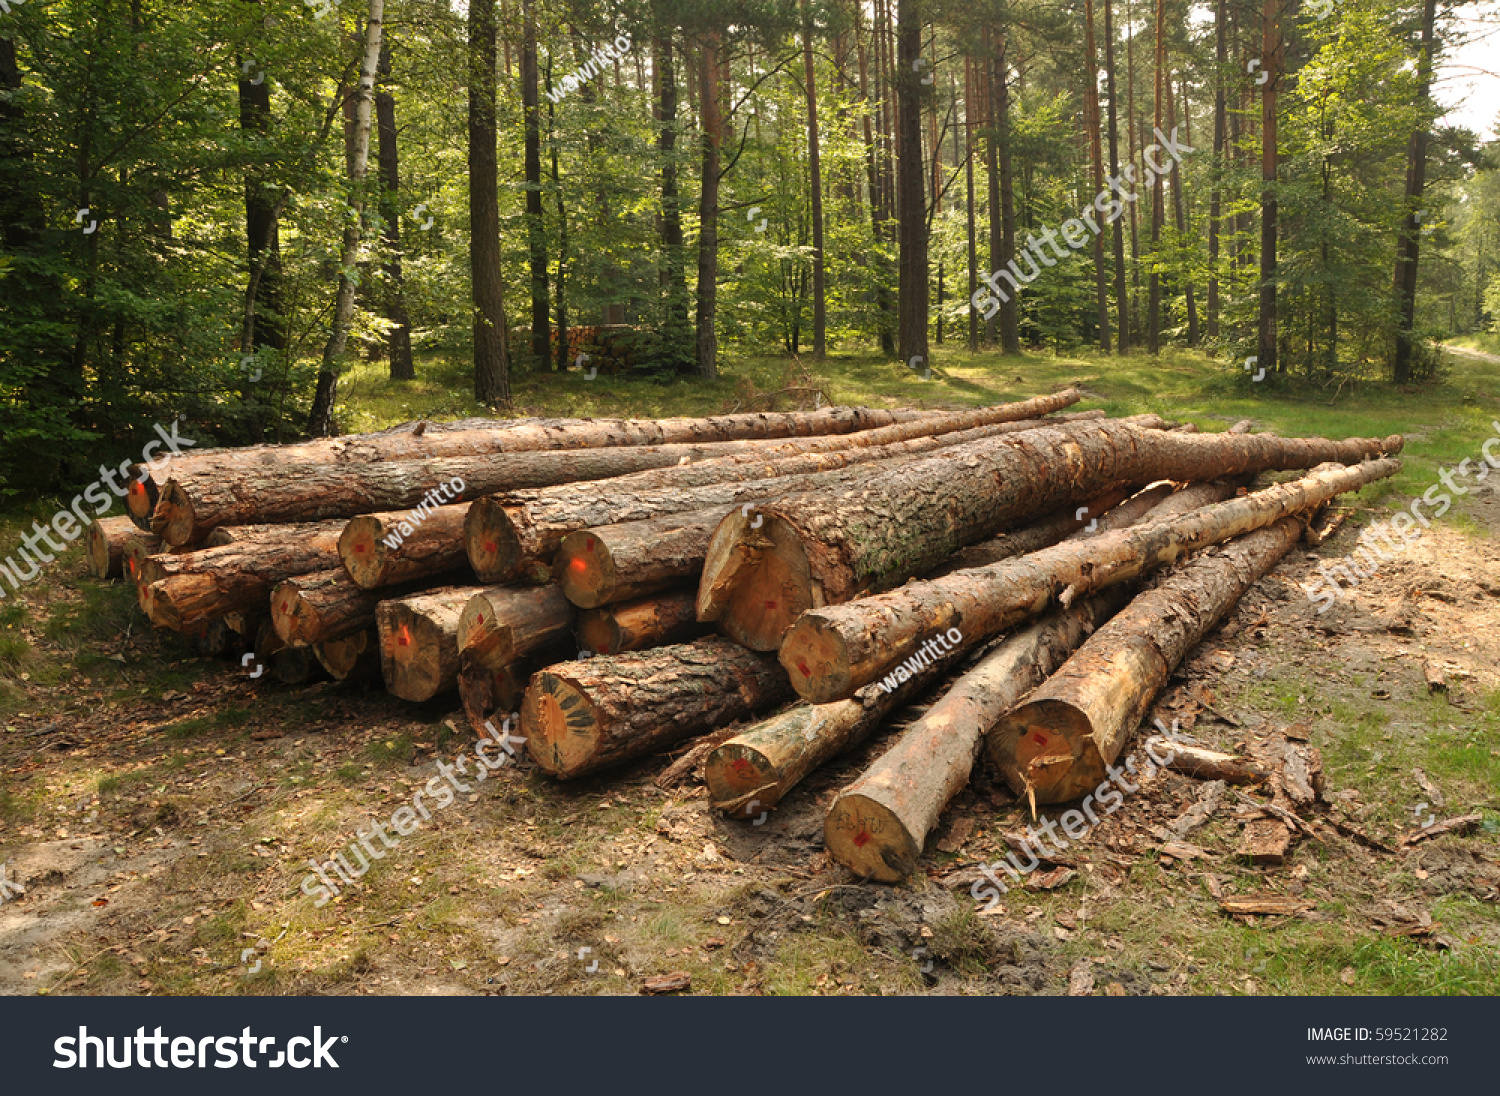 Pile Of Timber : Pile wood summer forest stock photo shutterstock